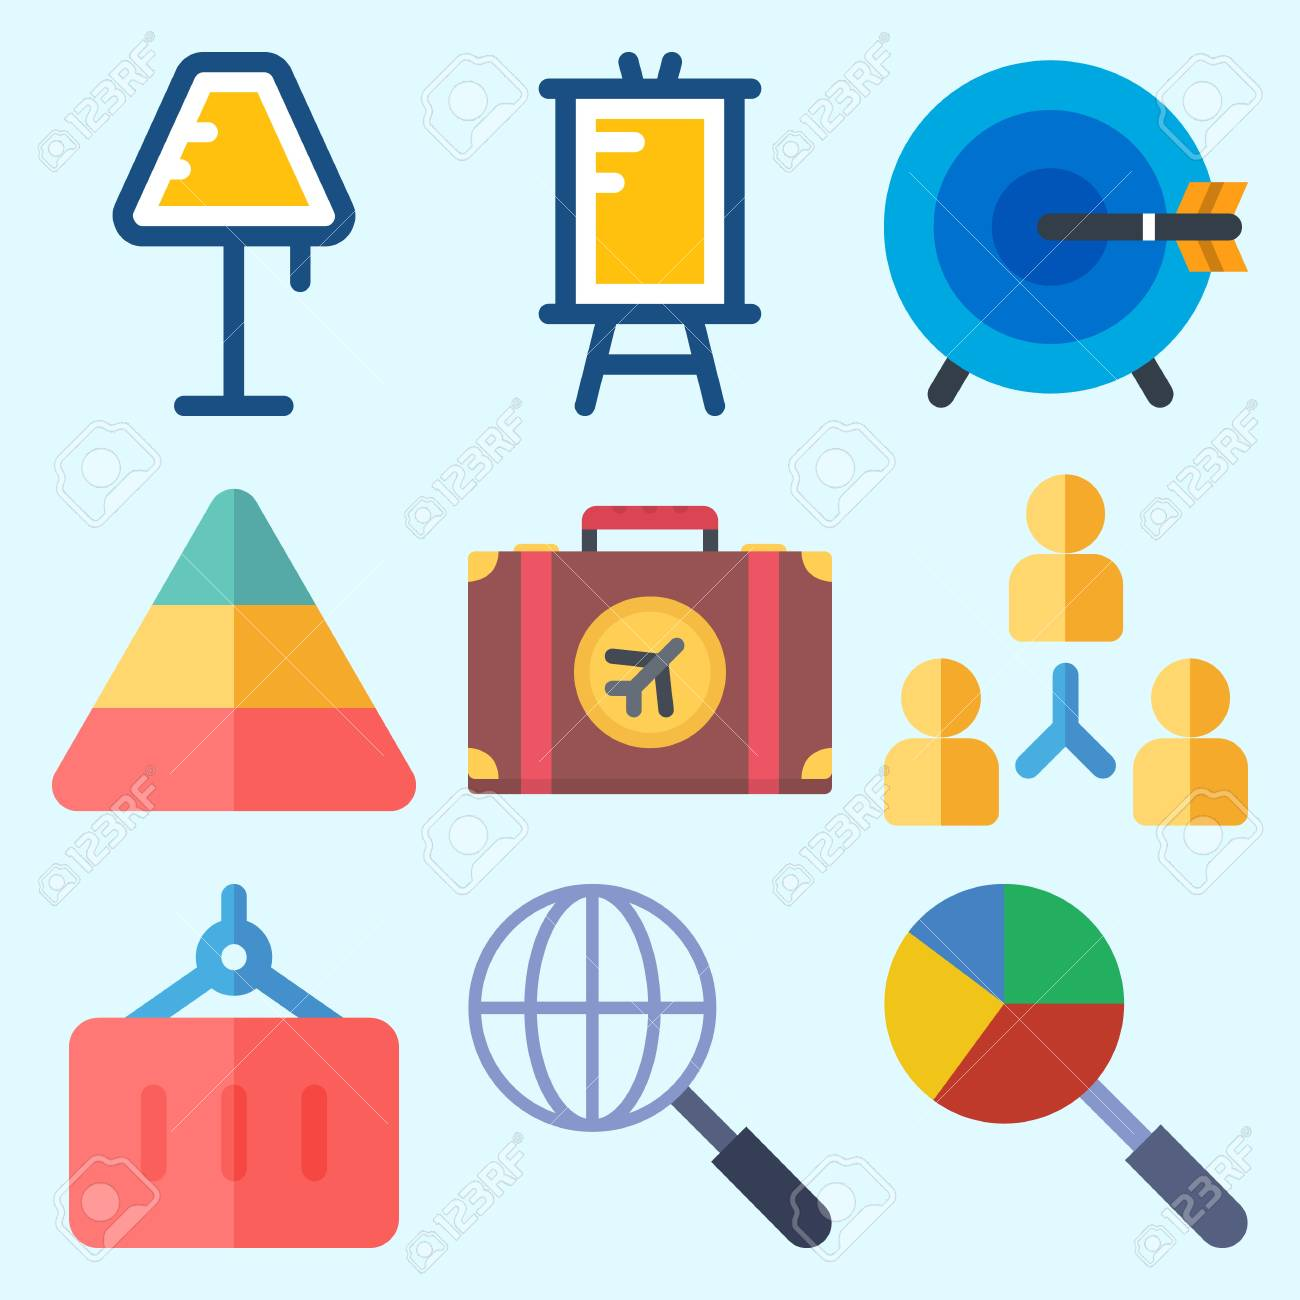 icons set about business with lamp suitcase pyramid presentation